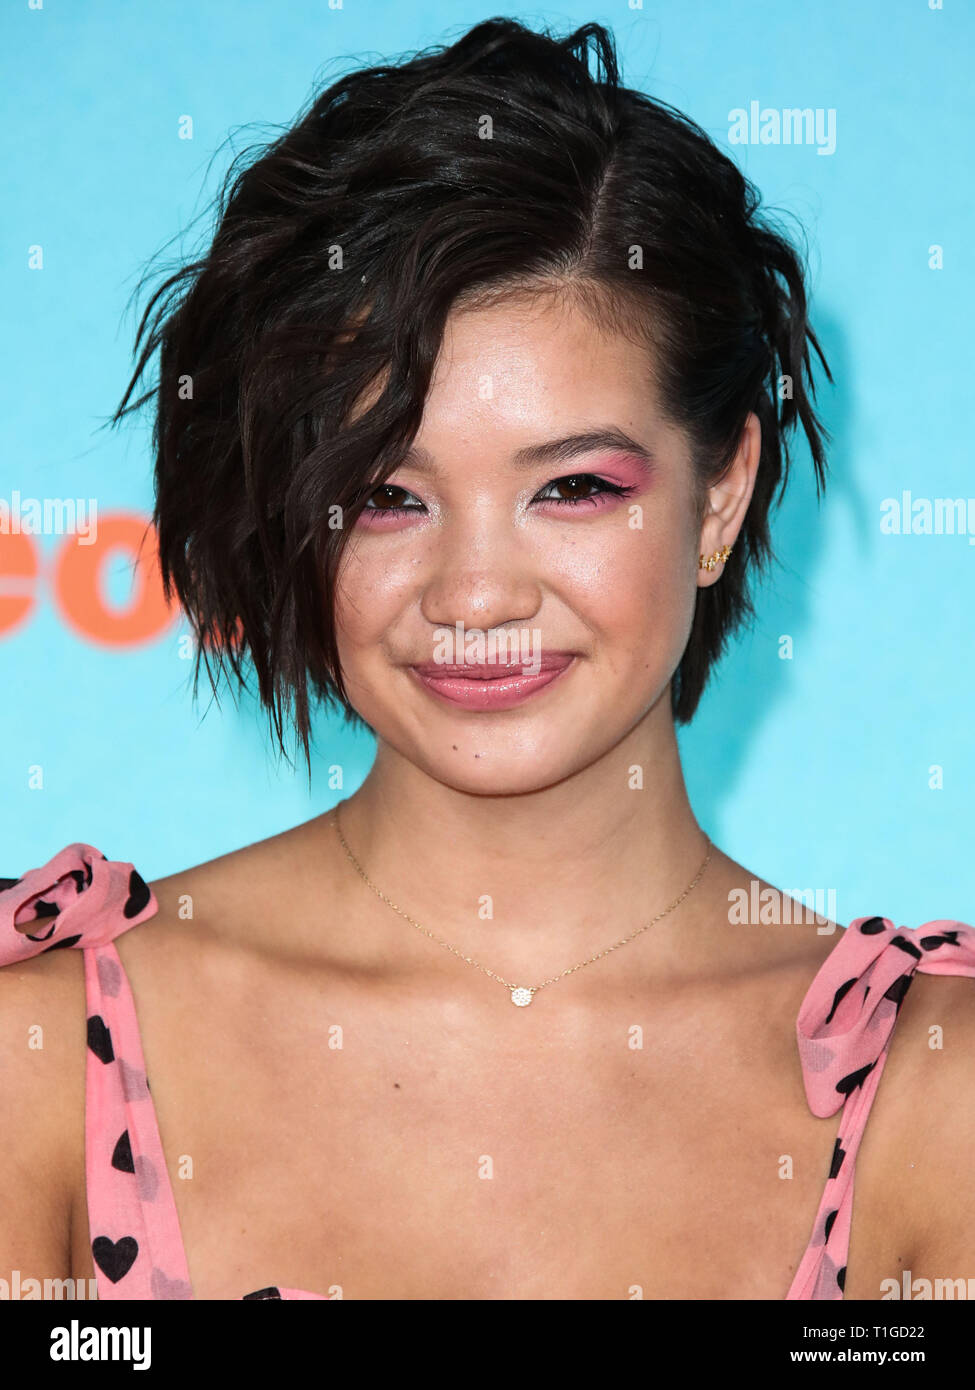 LOS ANGELES, CA, USA - MARCH 23: Peyton Elizabeth Lee arrives at Nickelodeon's 2019 Kids' Choice Awards held at the USC Galen Center on March 23, 2019 in Los Angeles, California, United States. (Photo by Xavier Collin/Image Press Agency) - Stock Image